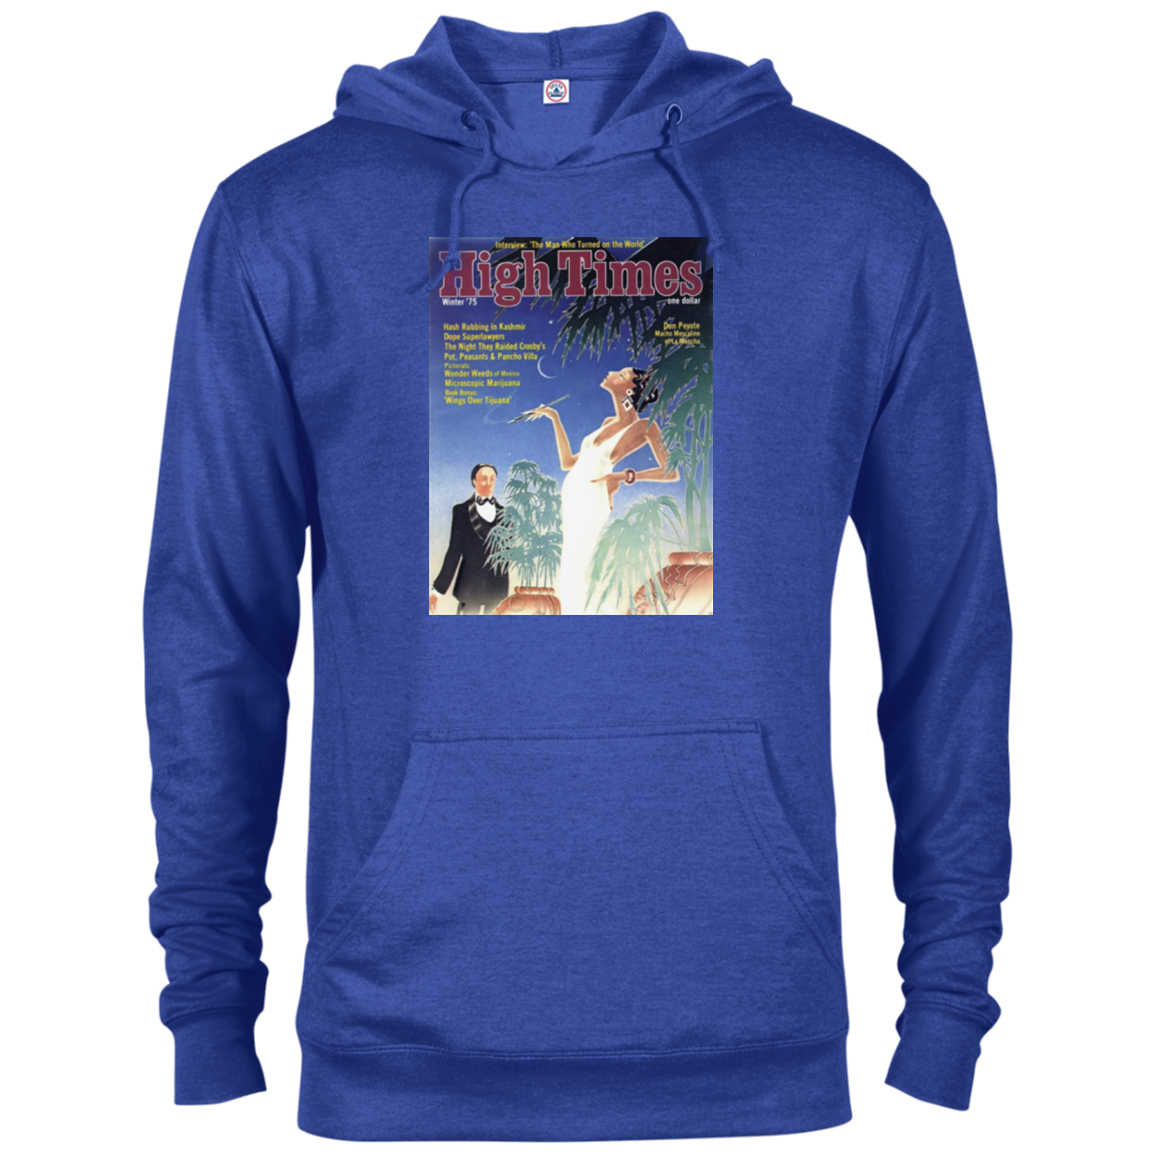 High Society Hoodie -1975 High Times Cover Men's Hoodie